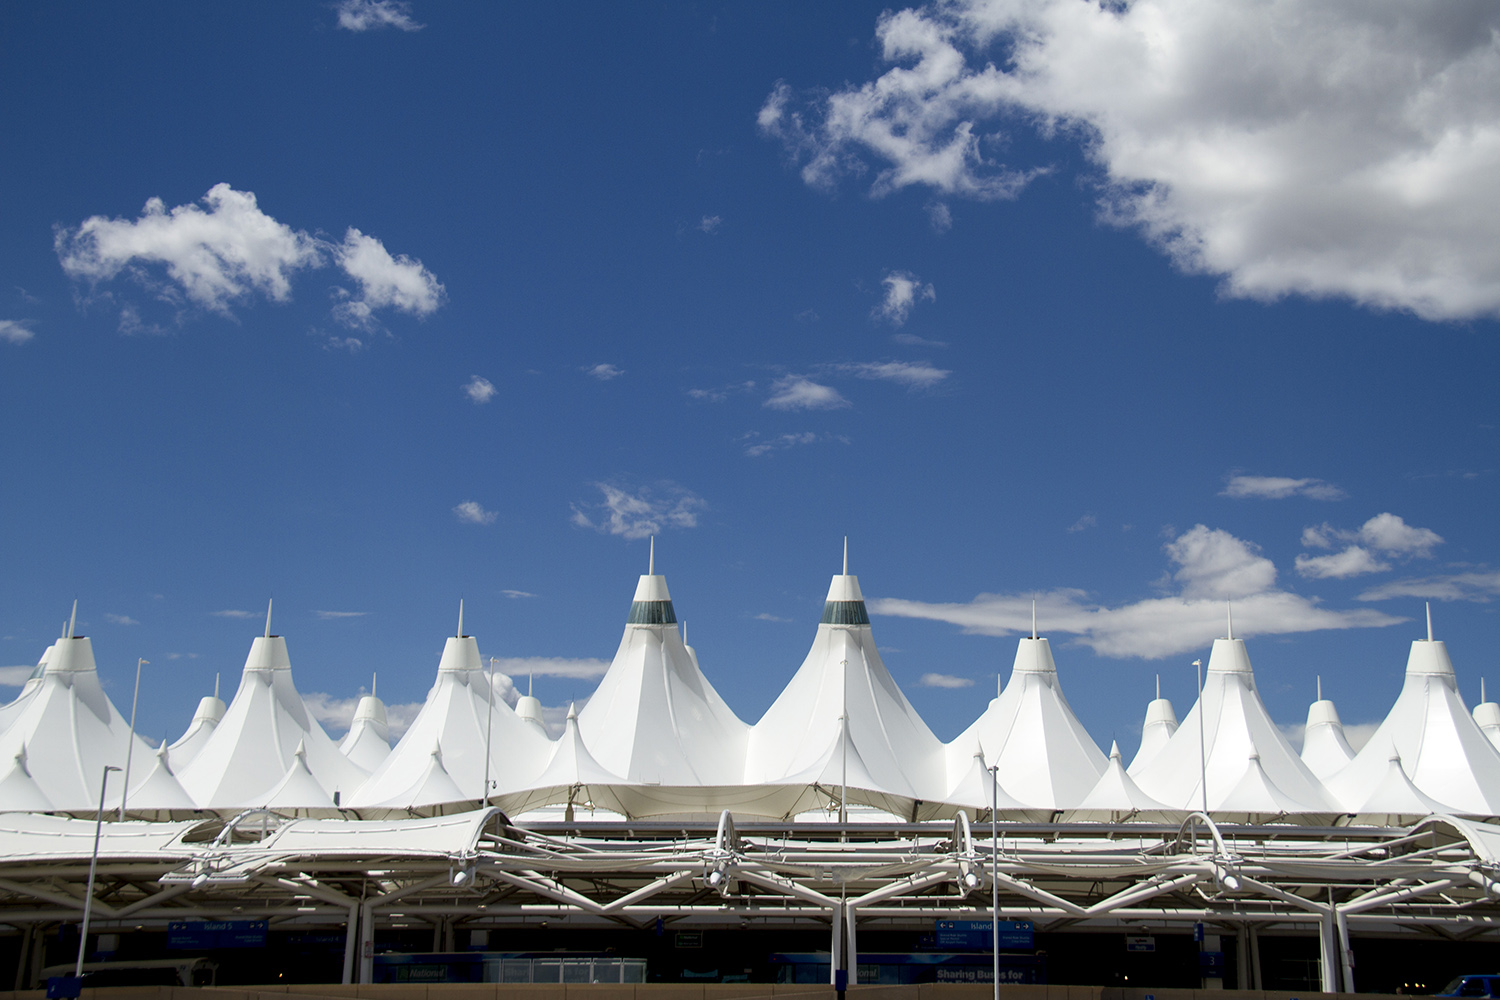 Denver International Airport's iconic pitched roof. (Kevin J. Beaty/Denverite)  dia; denver international airport; aerotropolis; denver; denverite; colorado; kevinjbeaty